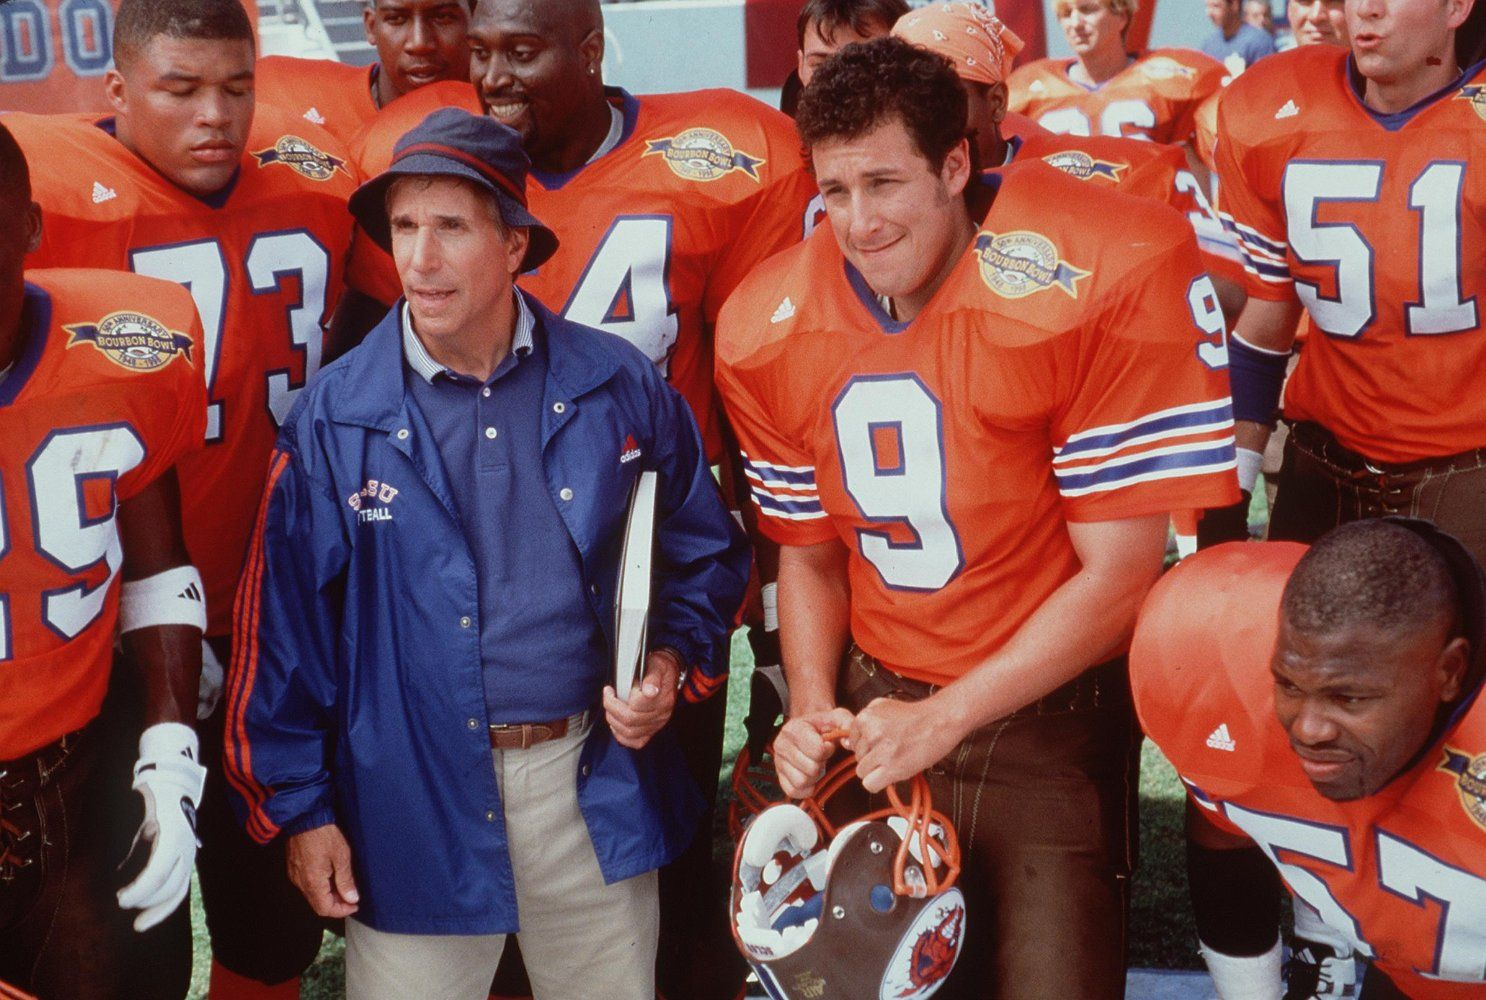 Adam Sandler and Henry Winkler in The Waterboy (1998